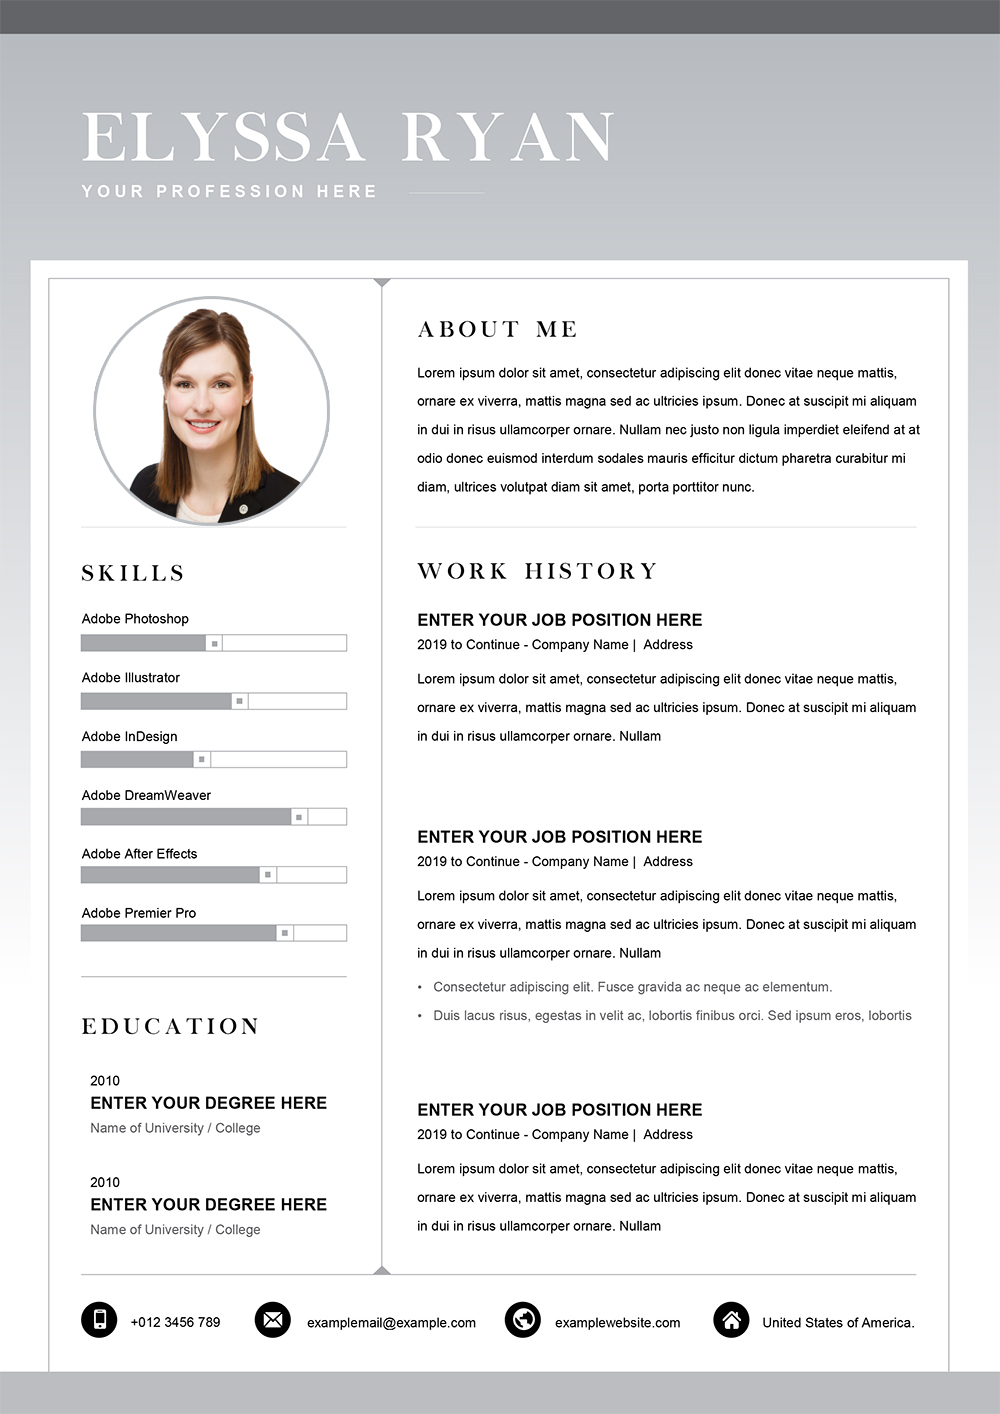 Functional Resume Word Template Cv Templates In Word To Download